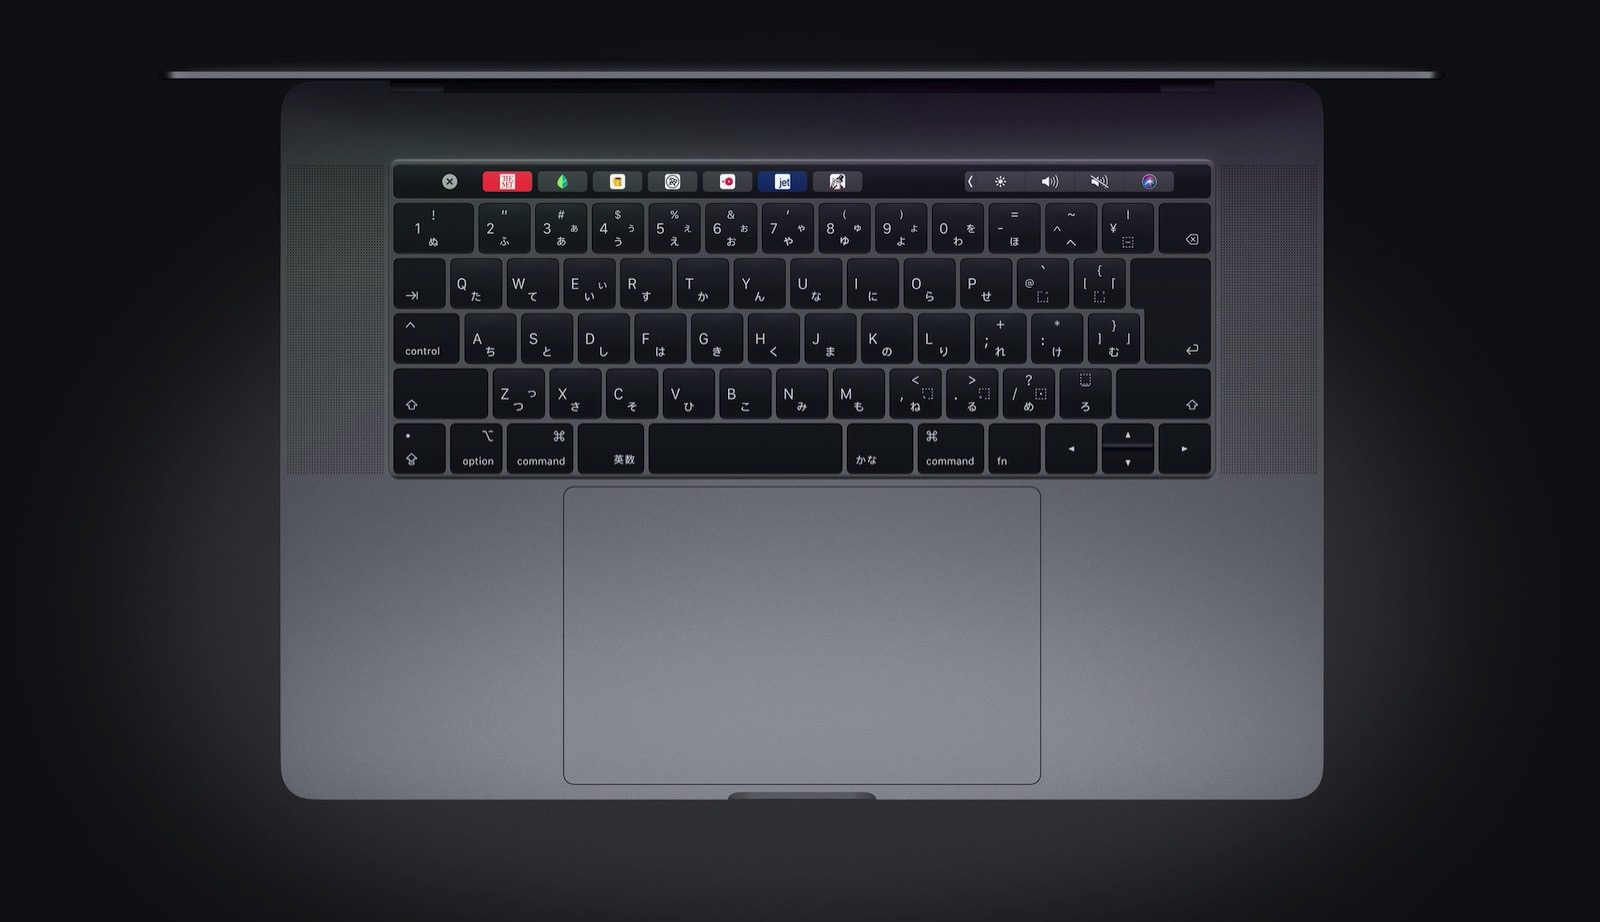 macbook-pro-15-now.jpg